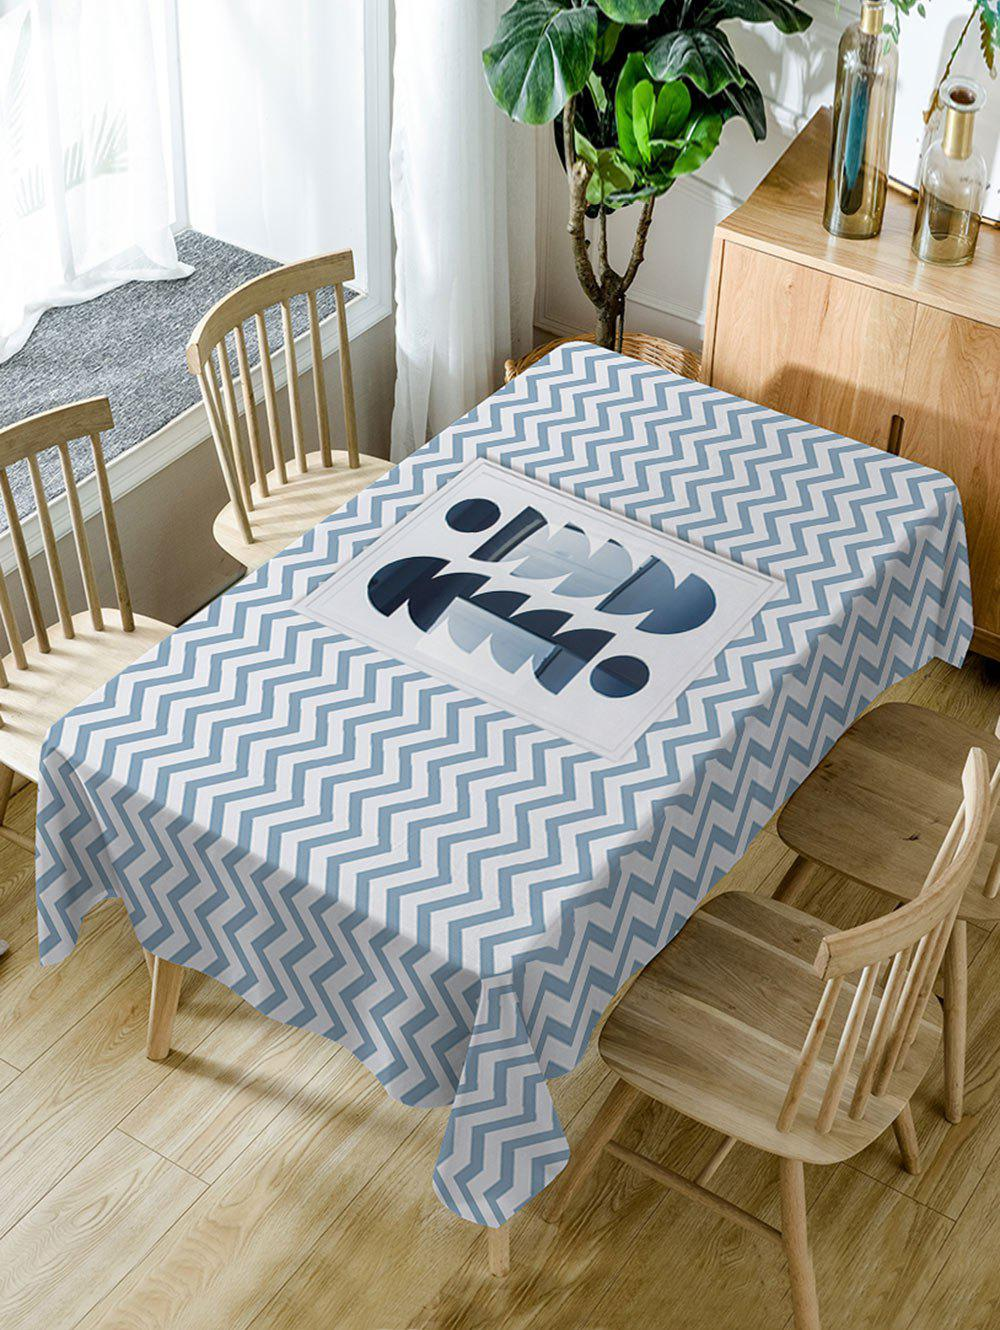 Fashion Zig Zag Print Fabric Waterproof Dining Table Cloth